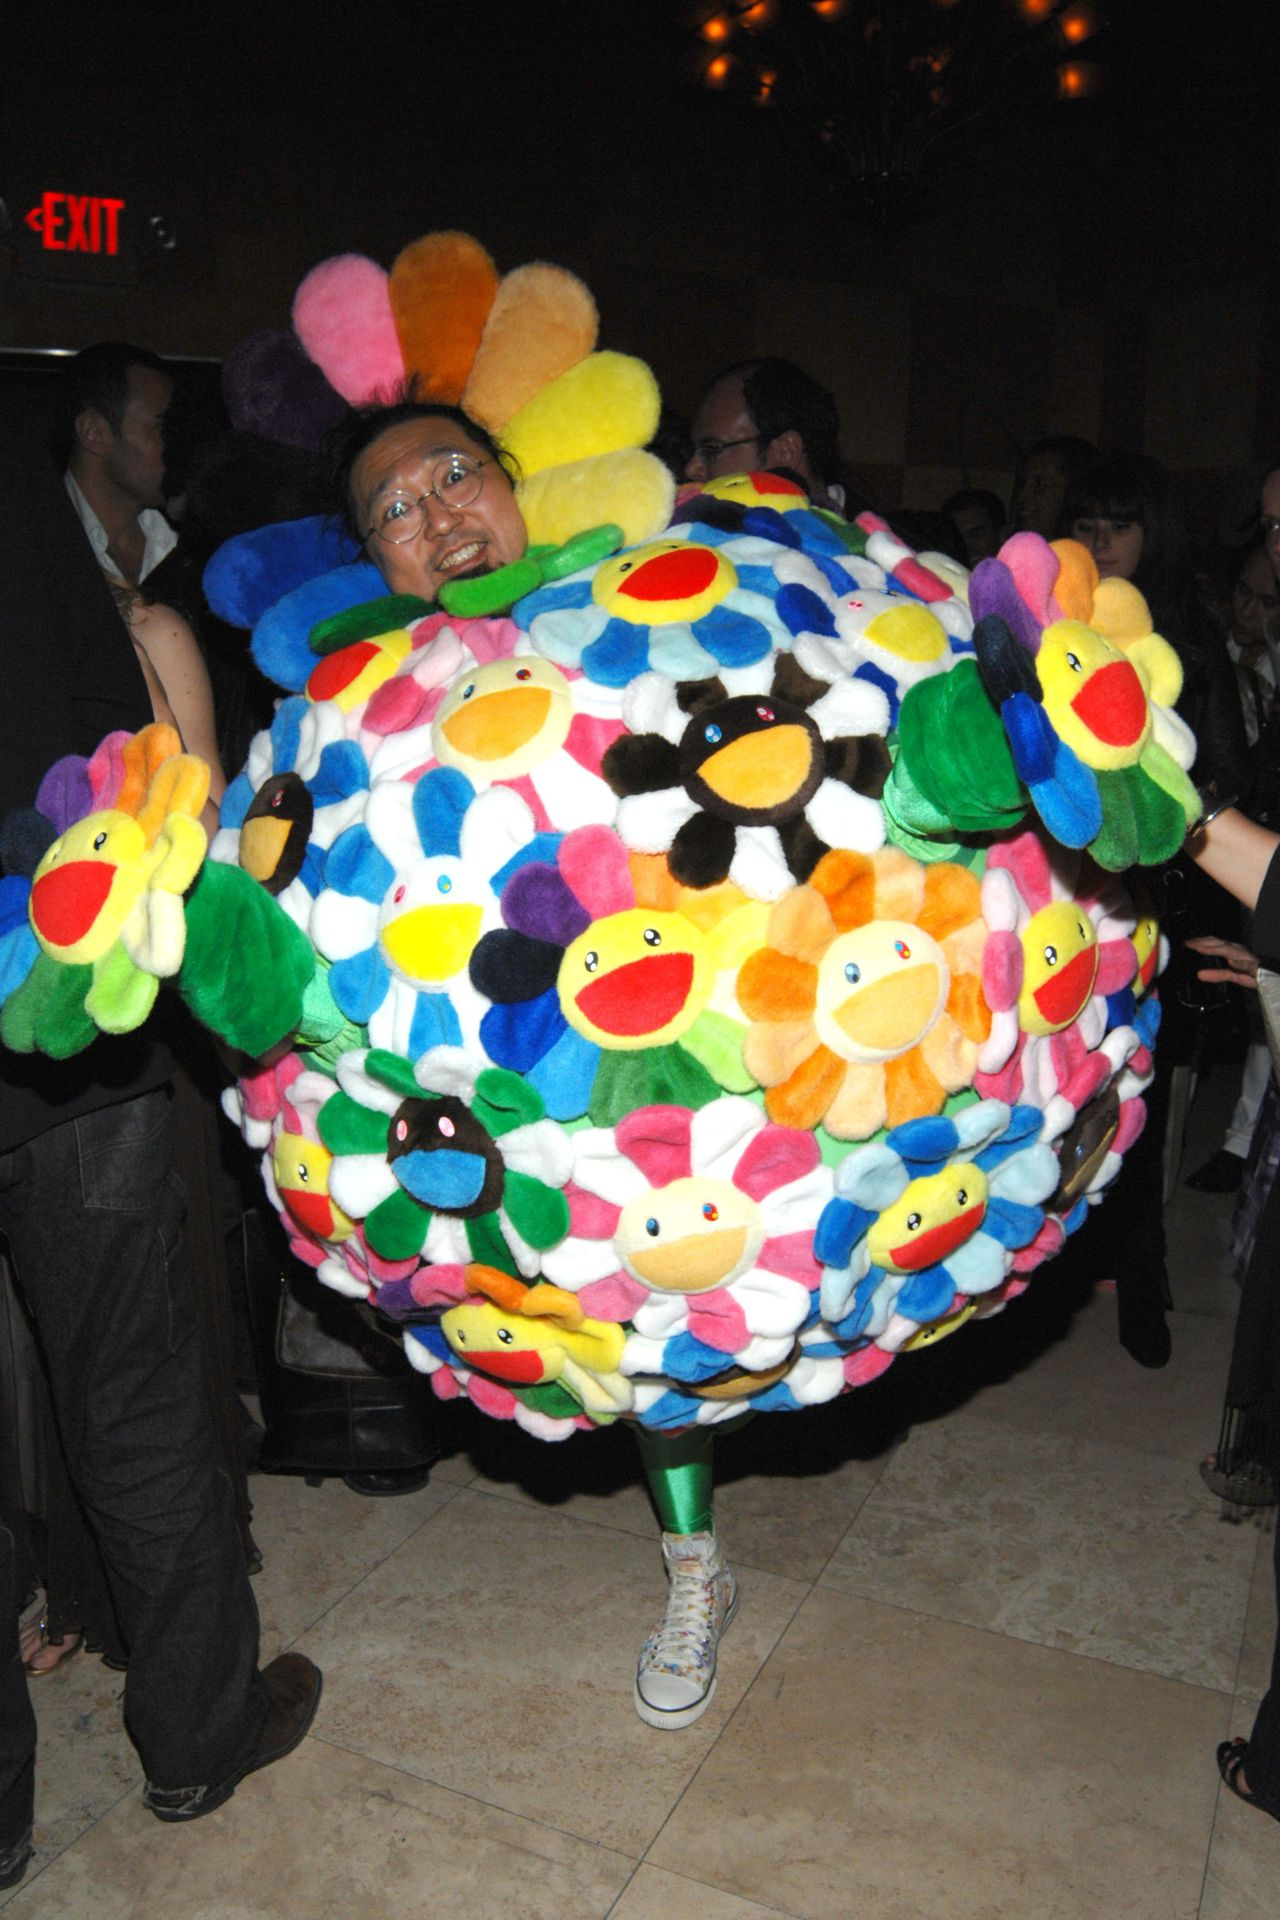 artruby: From the wonderful PMc vault: Takashi Murakami stealing the show at Miami Art Basel in 2008.